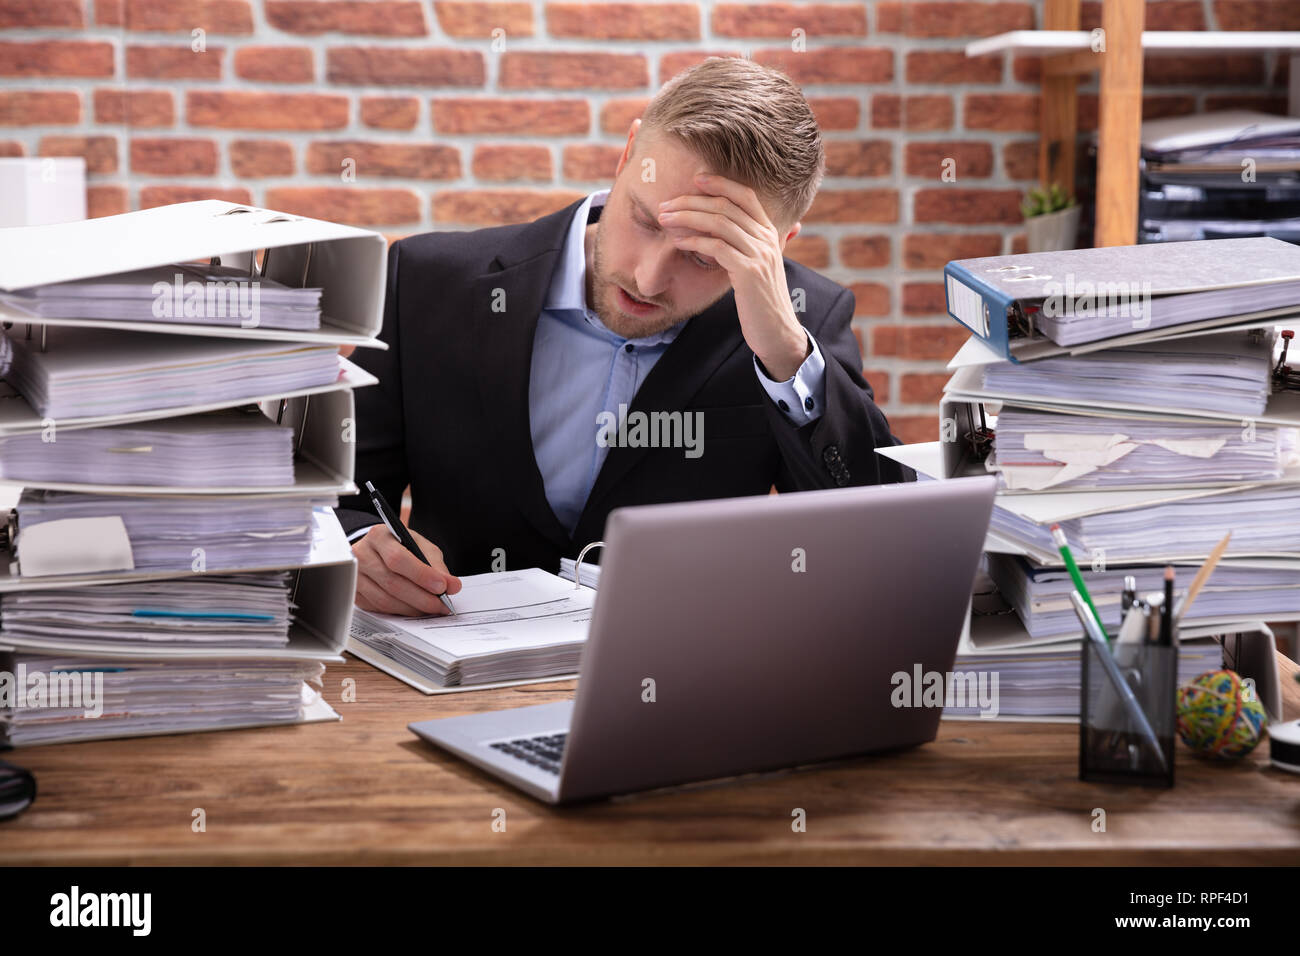 Stressful Businessman Sitting In Office With Stacked Of Files - Stock Image